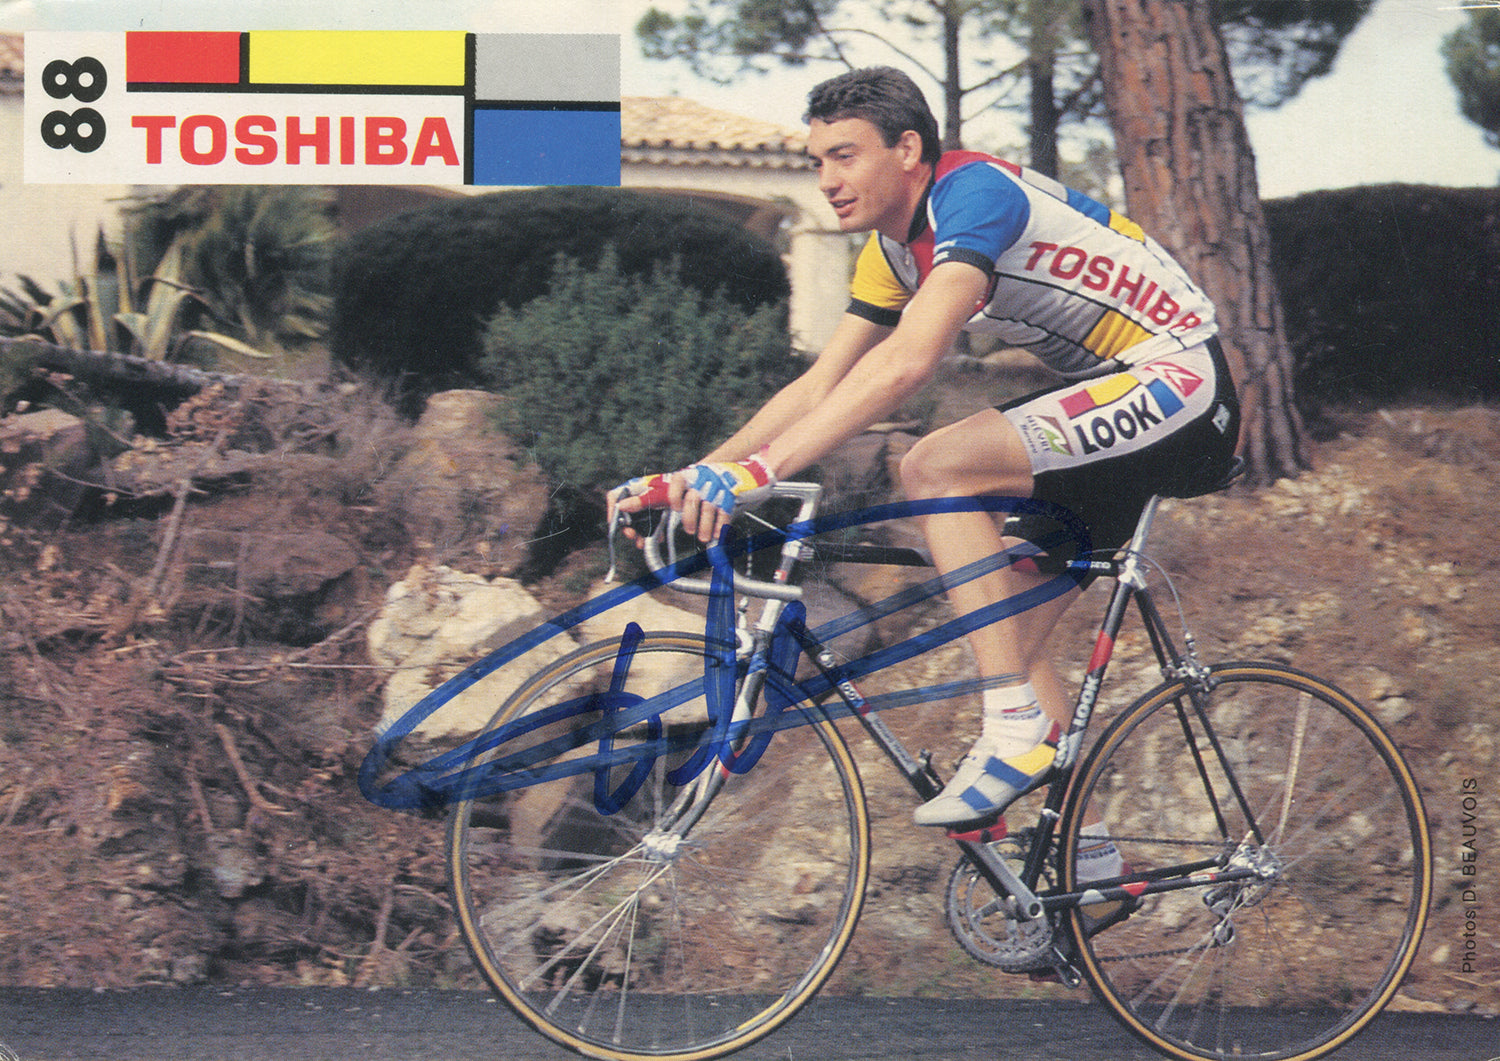 Fabrice Philipot joined the Toshiba Cycling Team in 1988 after 16 victories the previous three seasons.  He went onto win the young rider competition at the 1989 Tour de France.